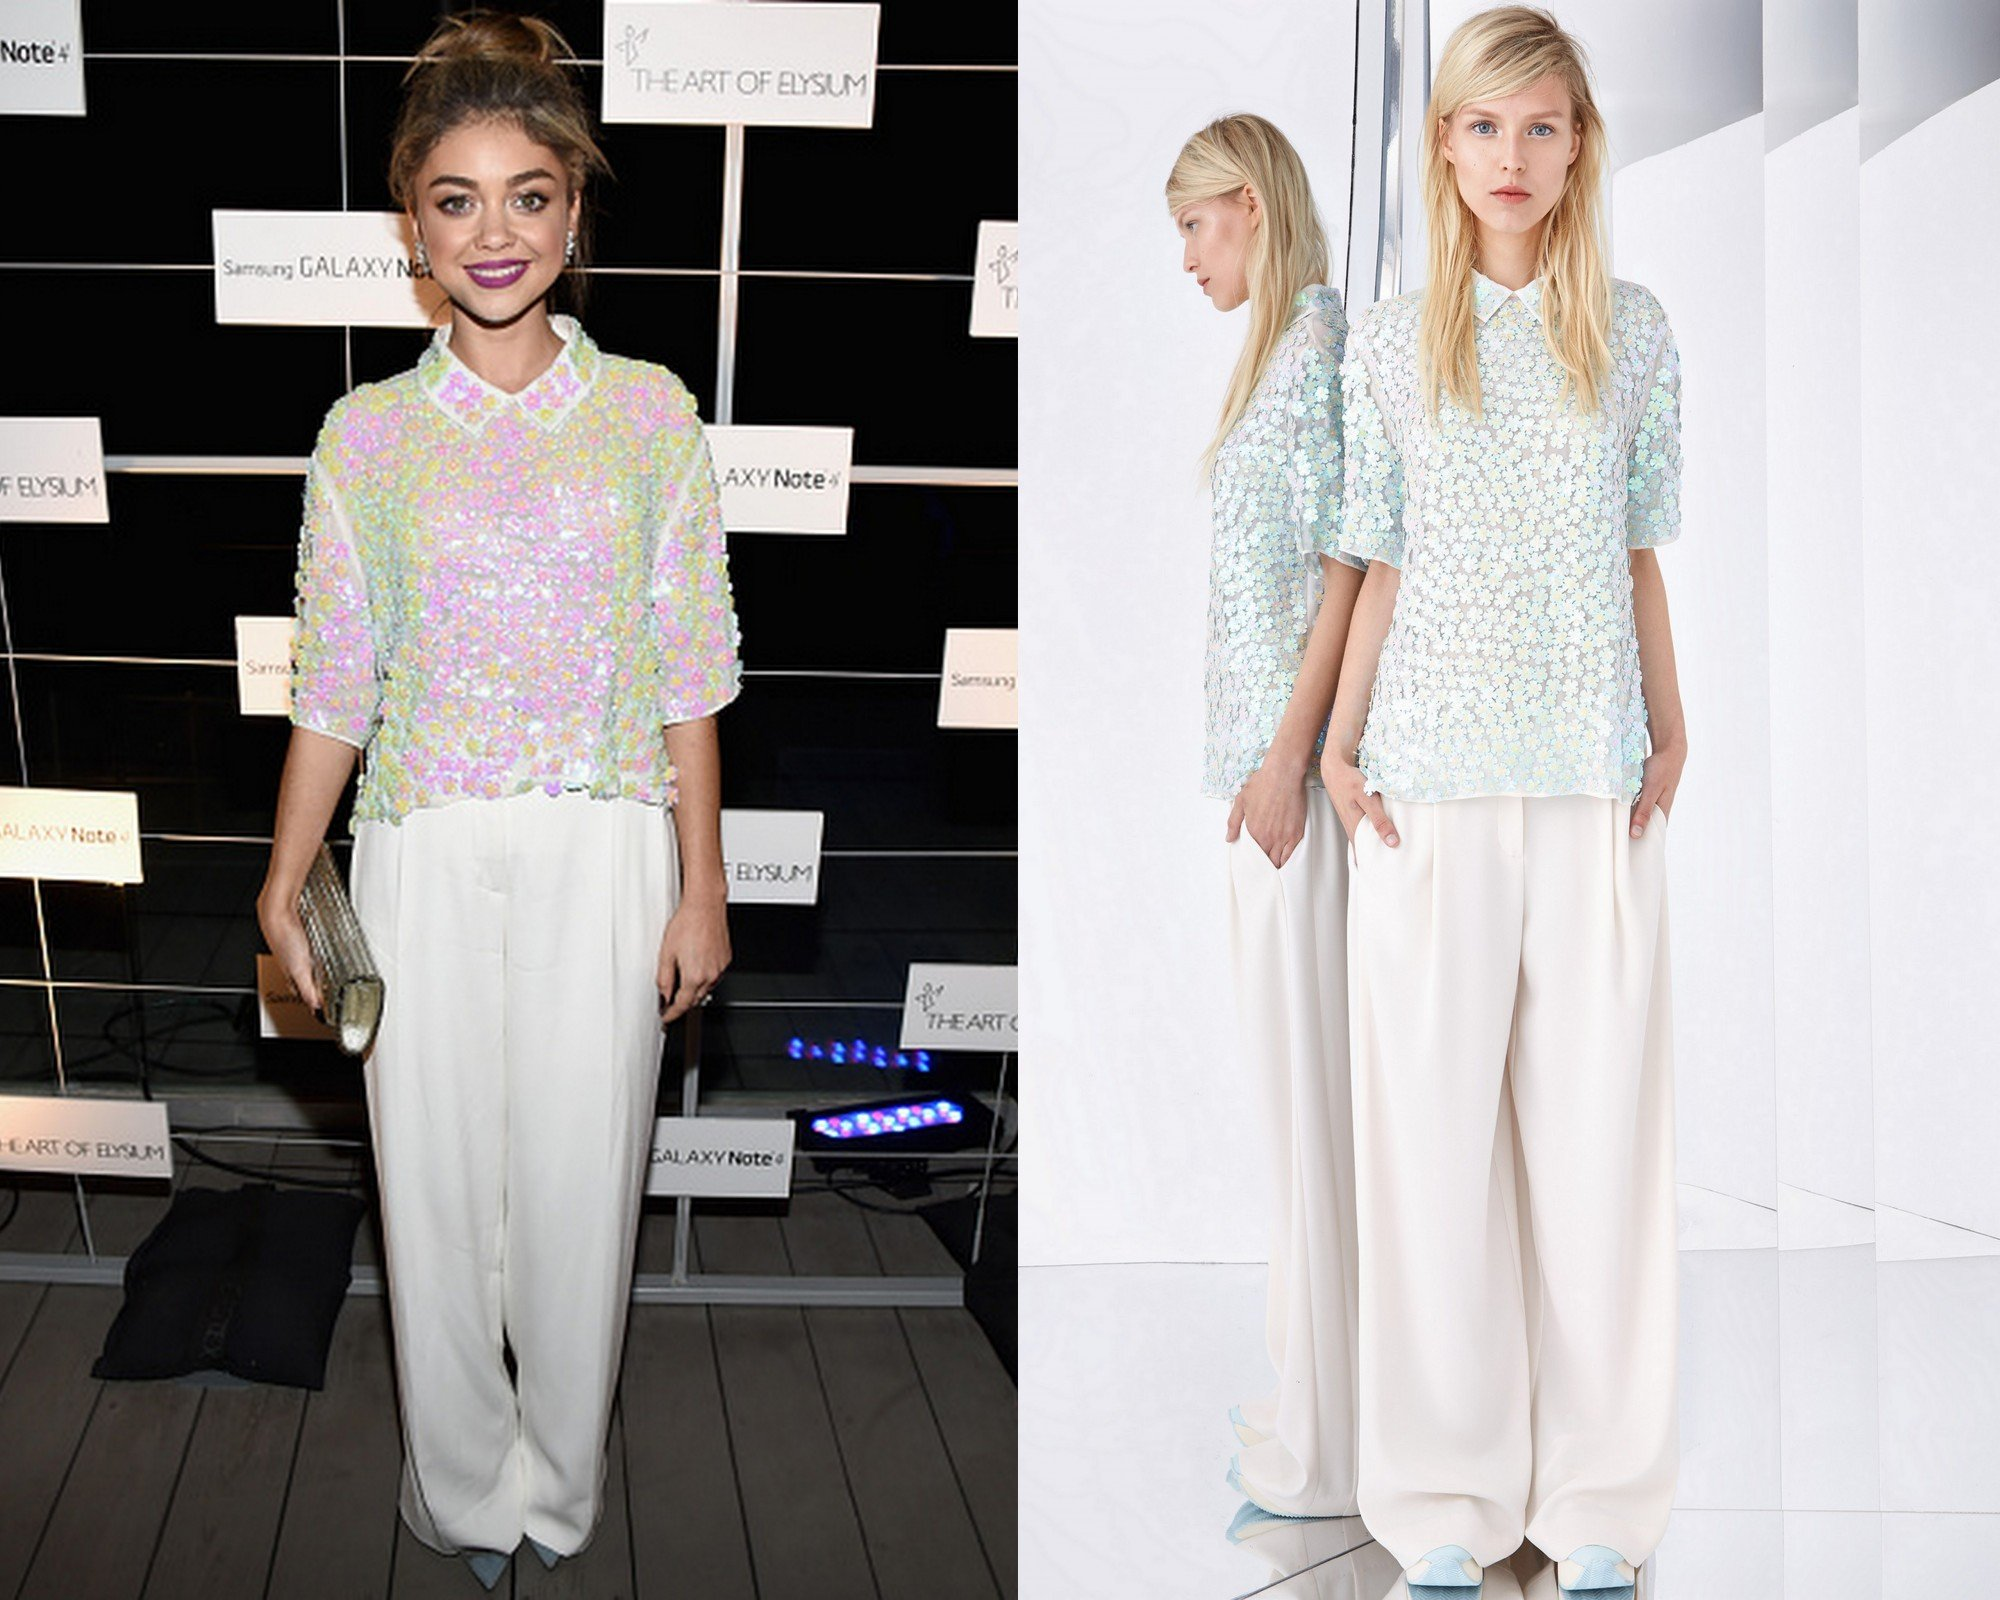 sarah-hyland-wearing-dkny-the-art-of-elysium-pre-event-dinner-for-heaven-2015/